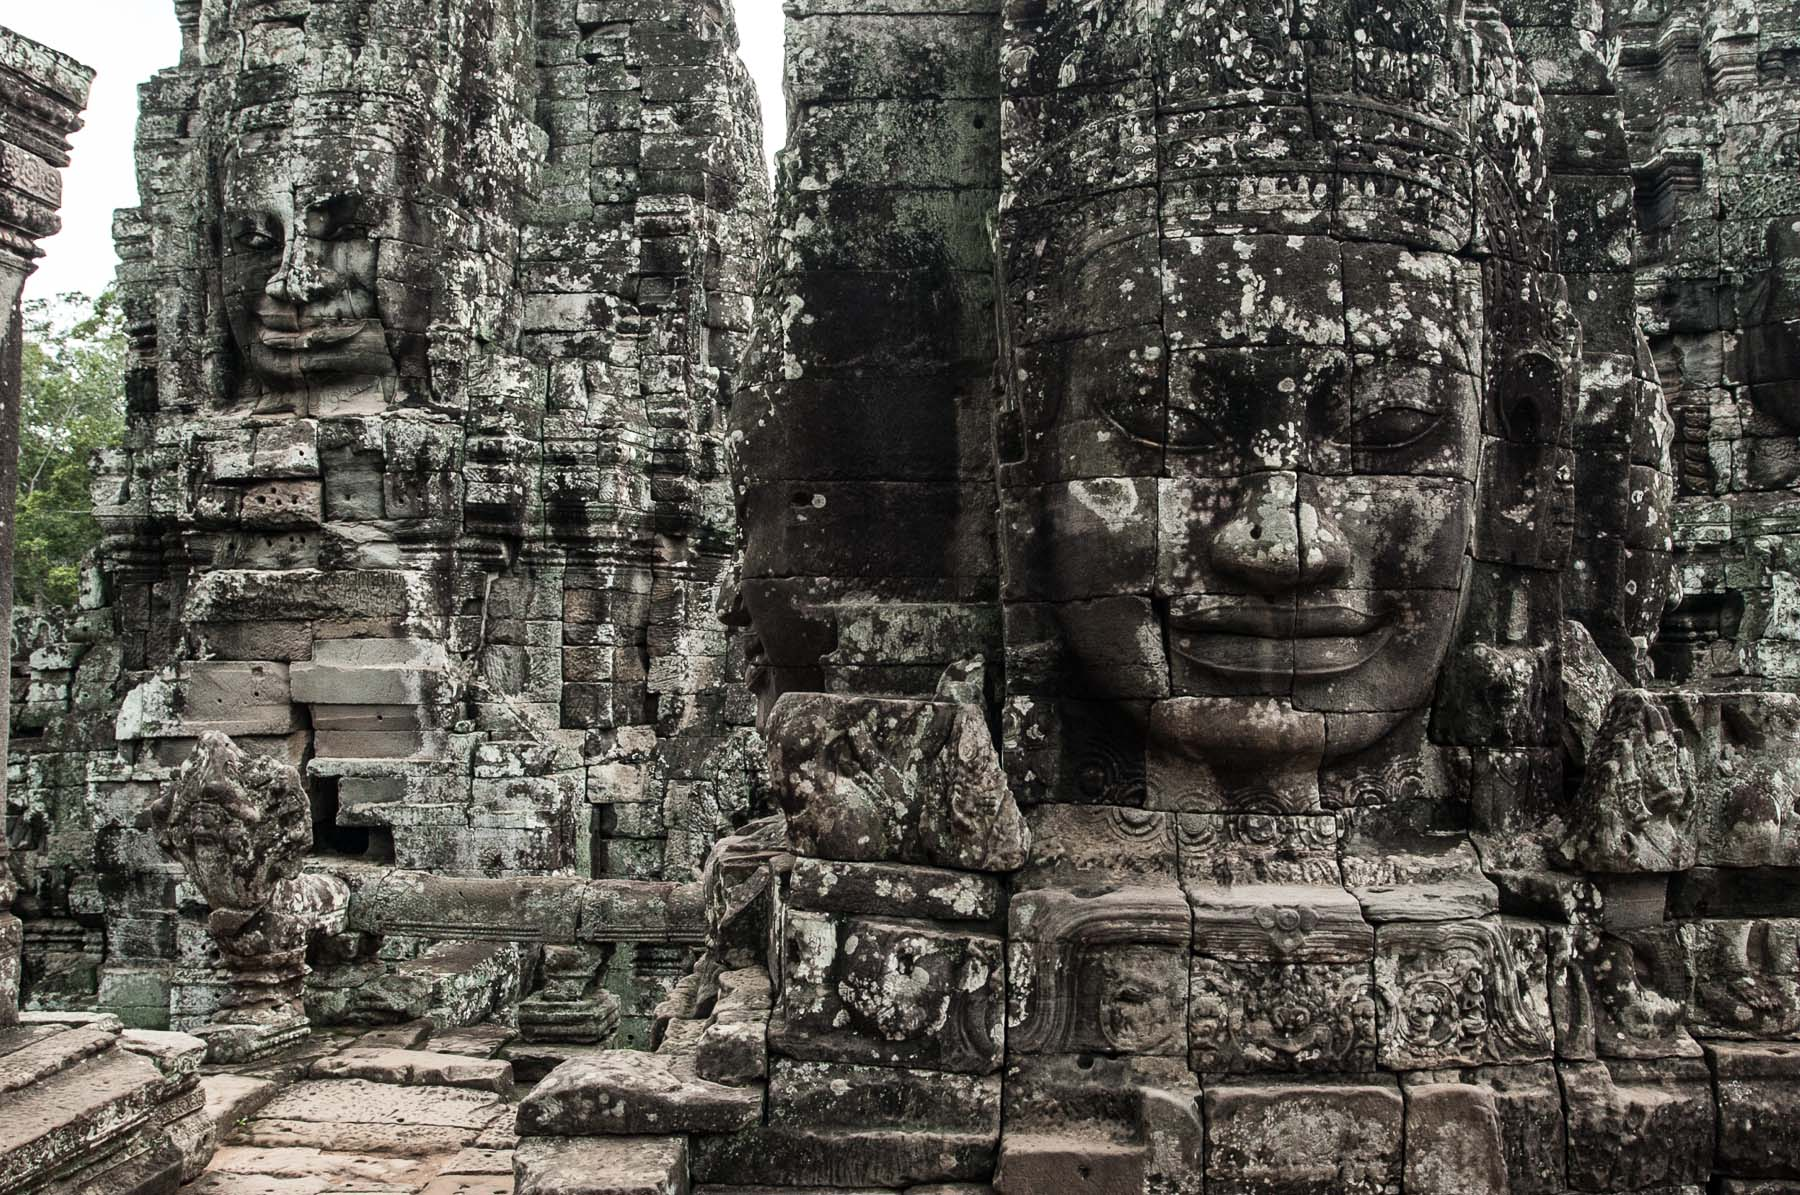 Smiling carved faces of Bayon temple, Siem Reap Cambodia.